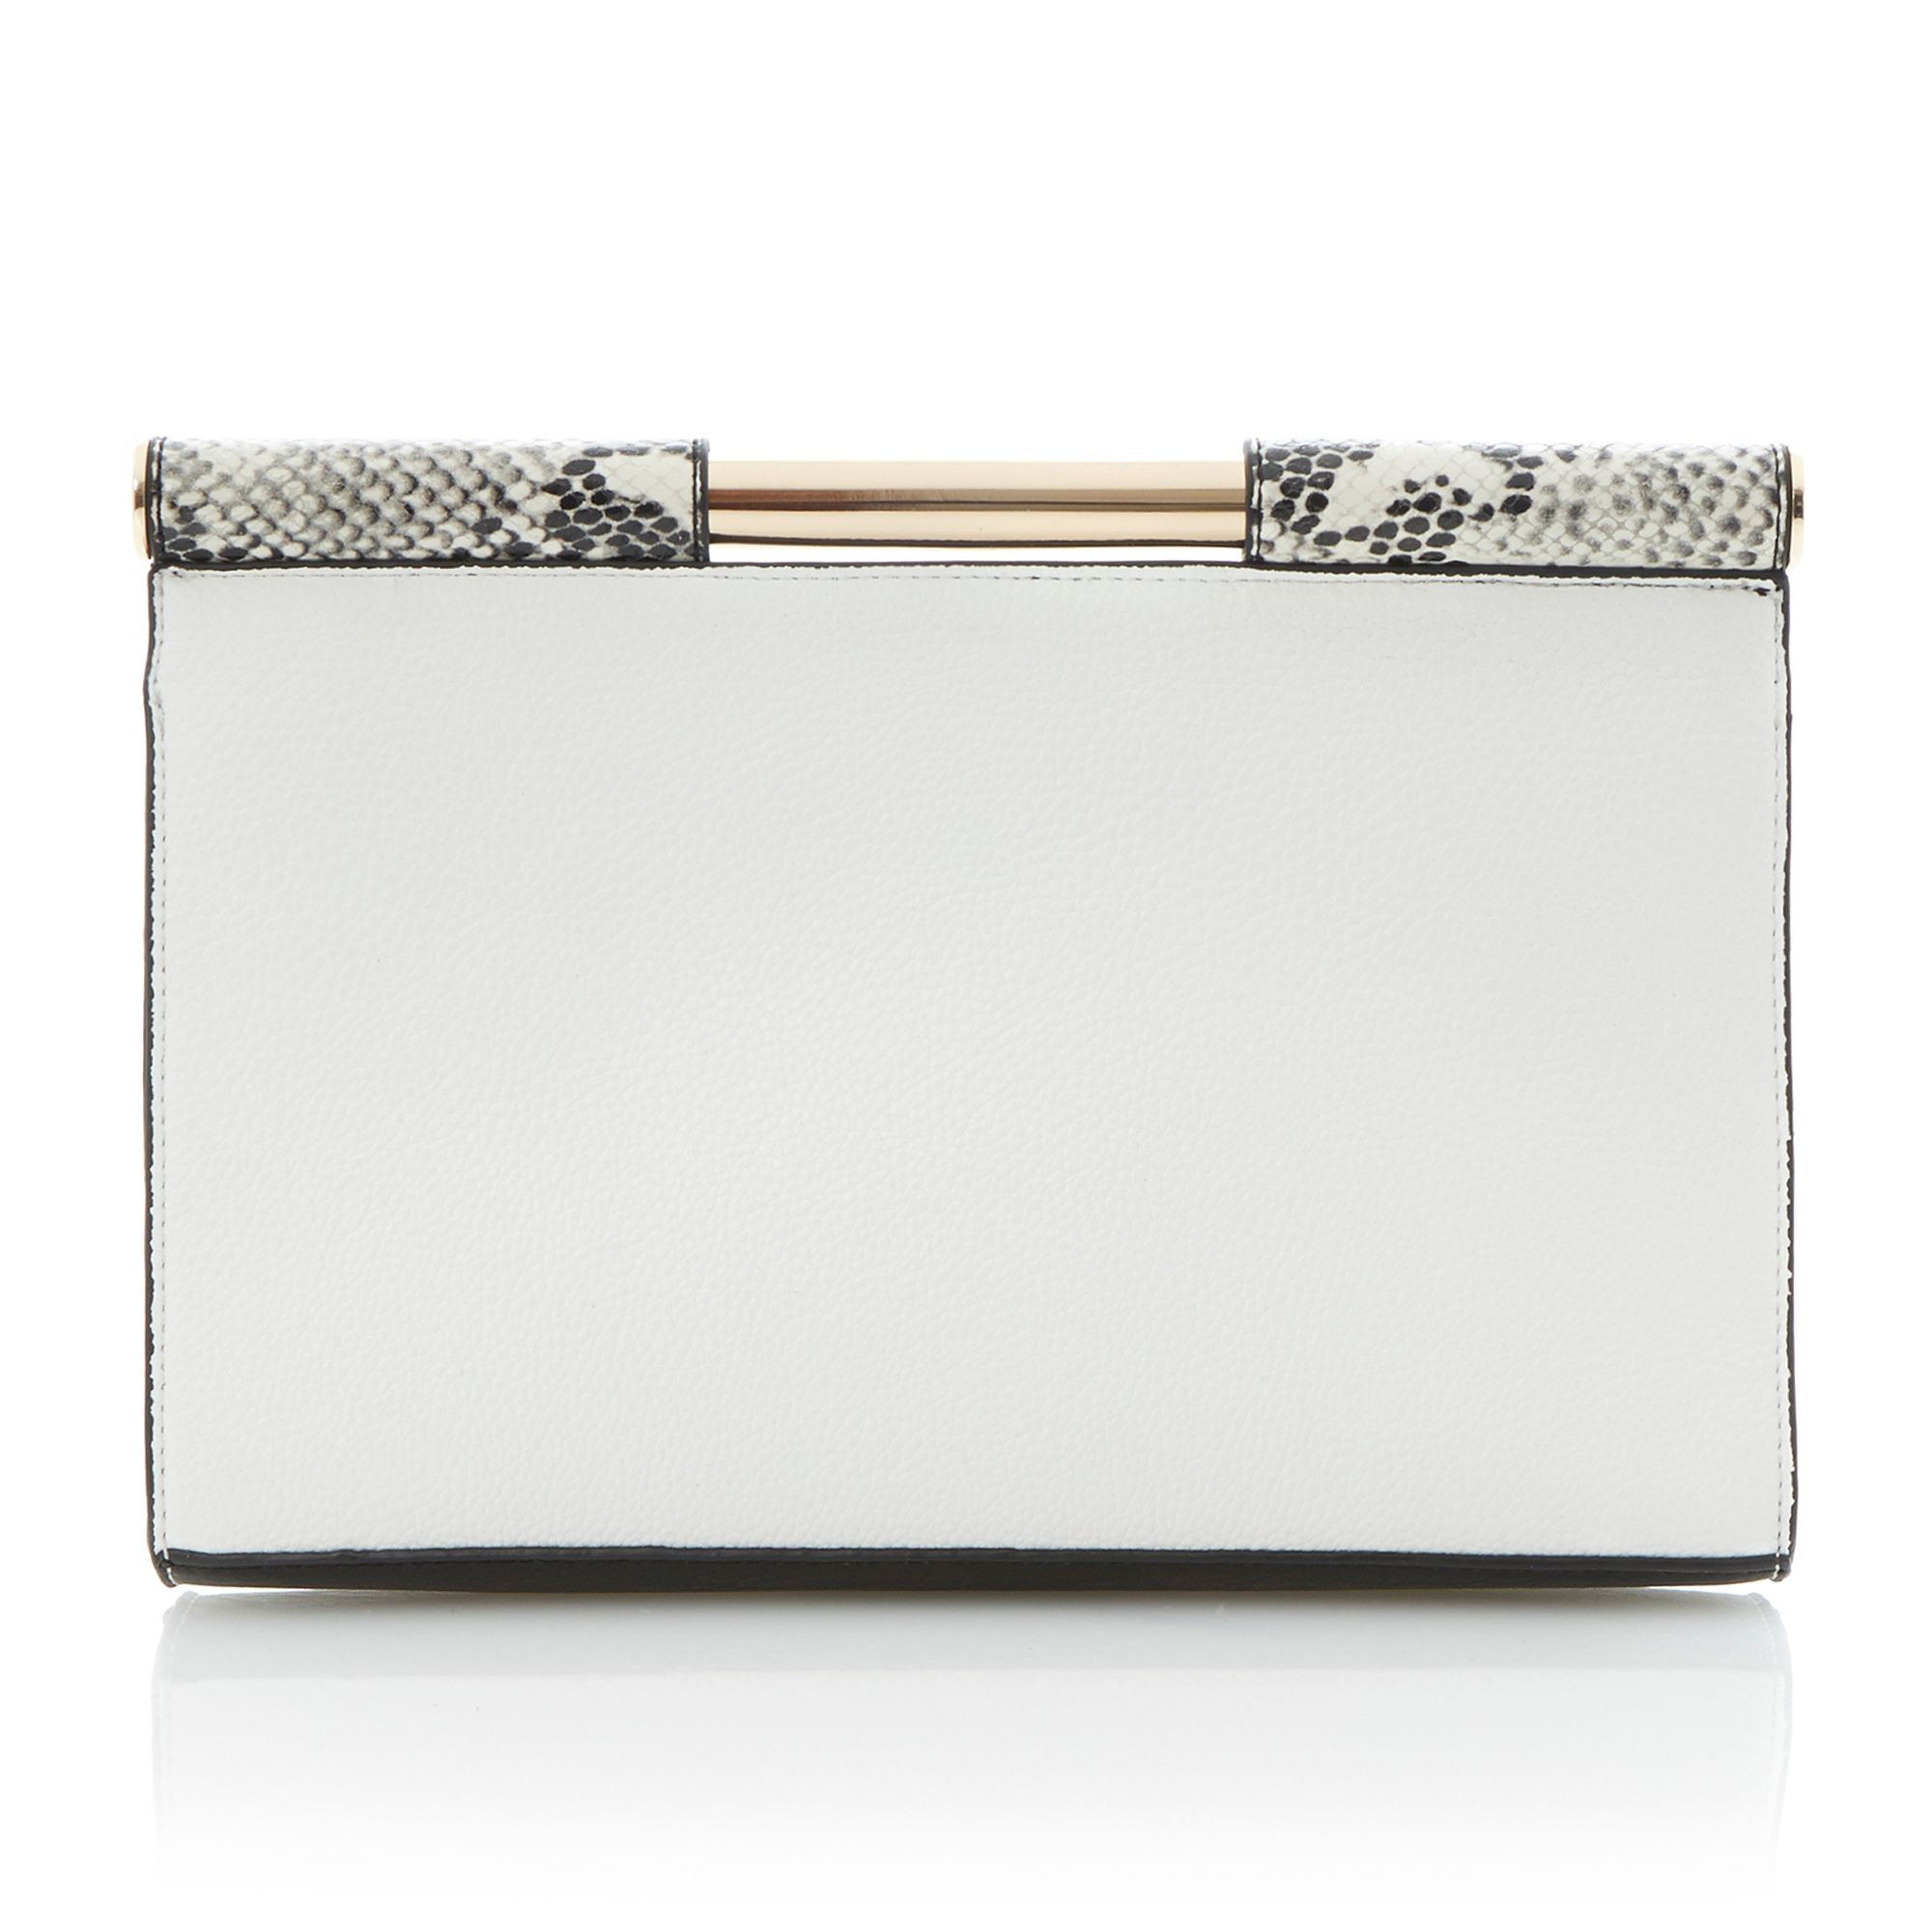 Barrio bartop envelope clutch bag